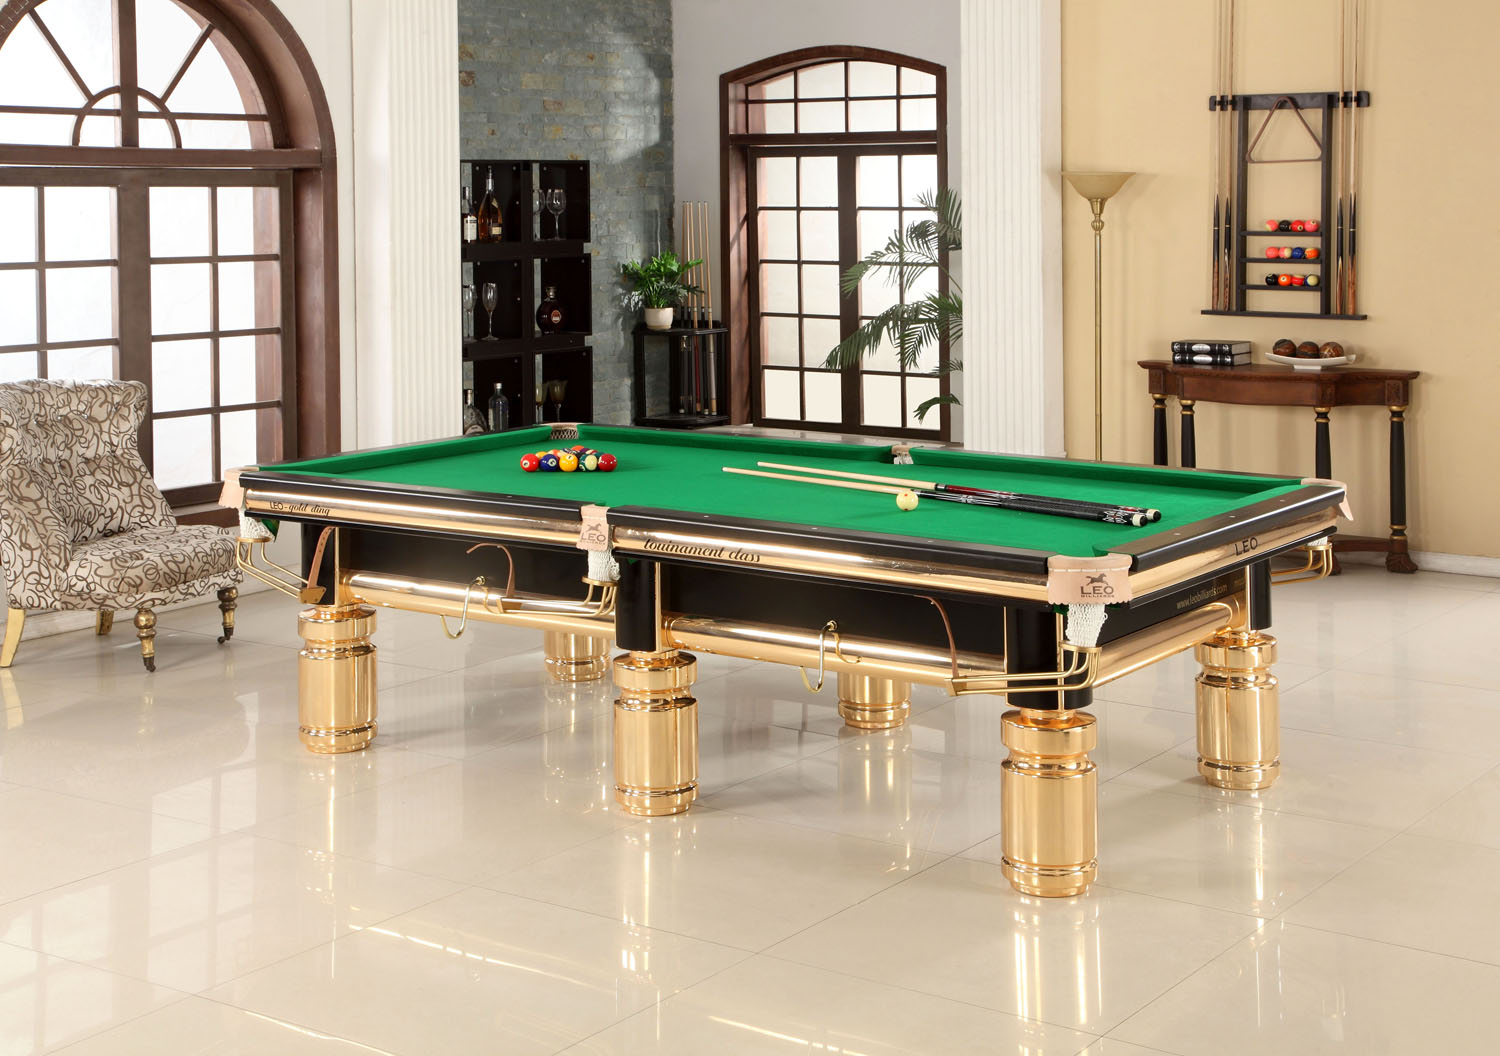 http://www.legobilliards.com.cn/upload/images/201506/1434933054732.jpg